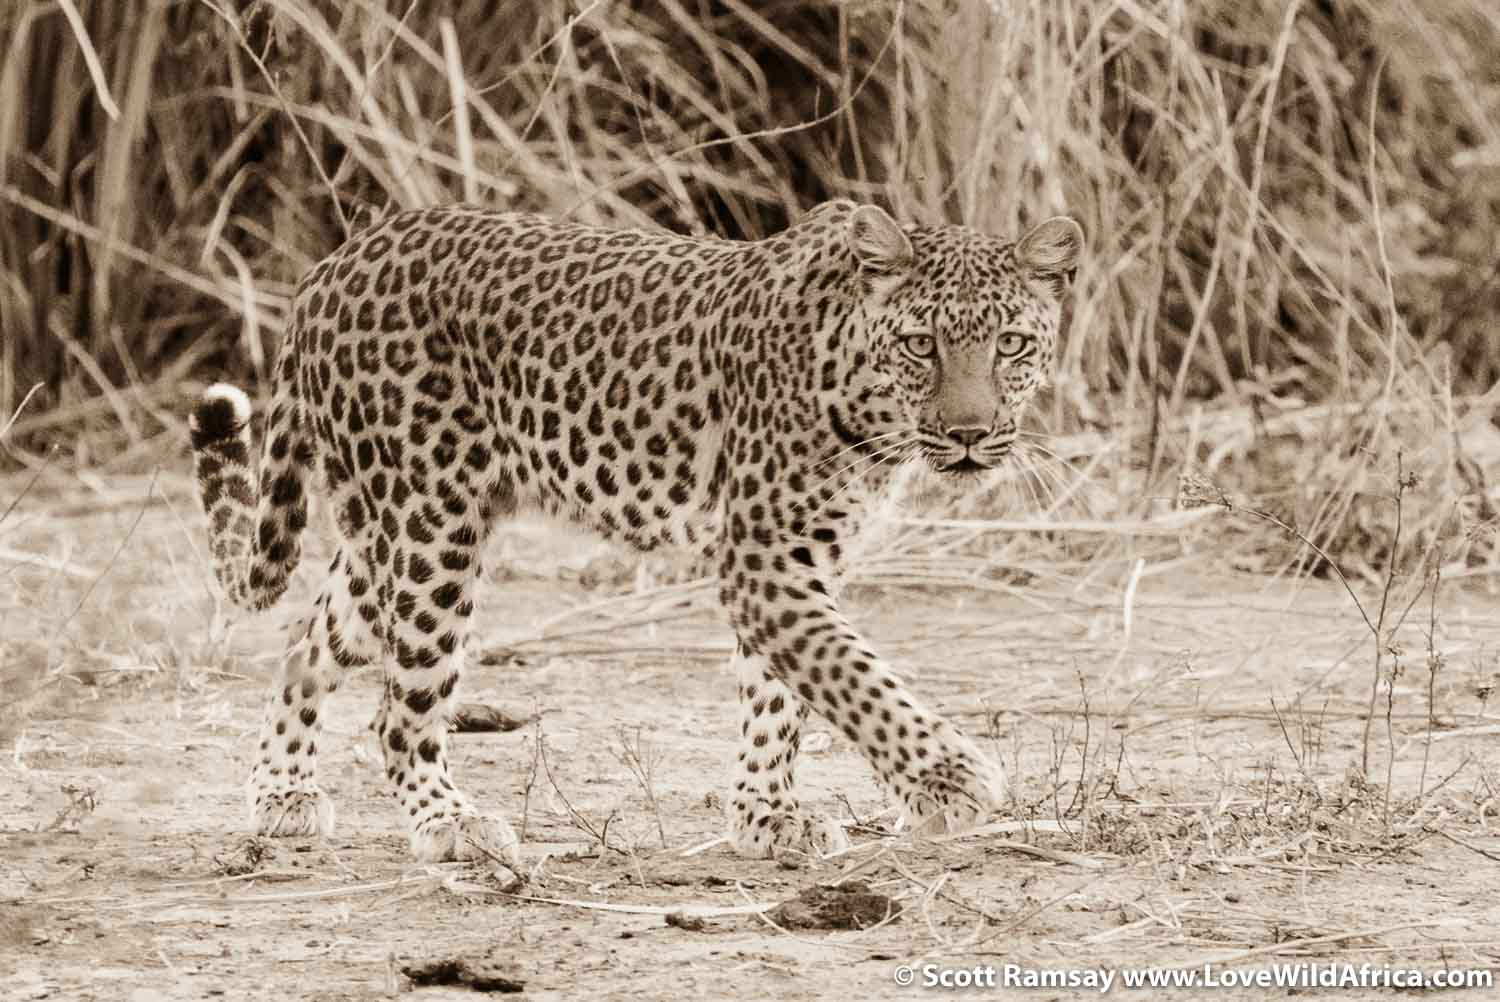 Lady leopard of Mana Pools